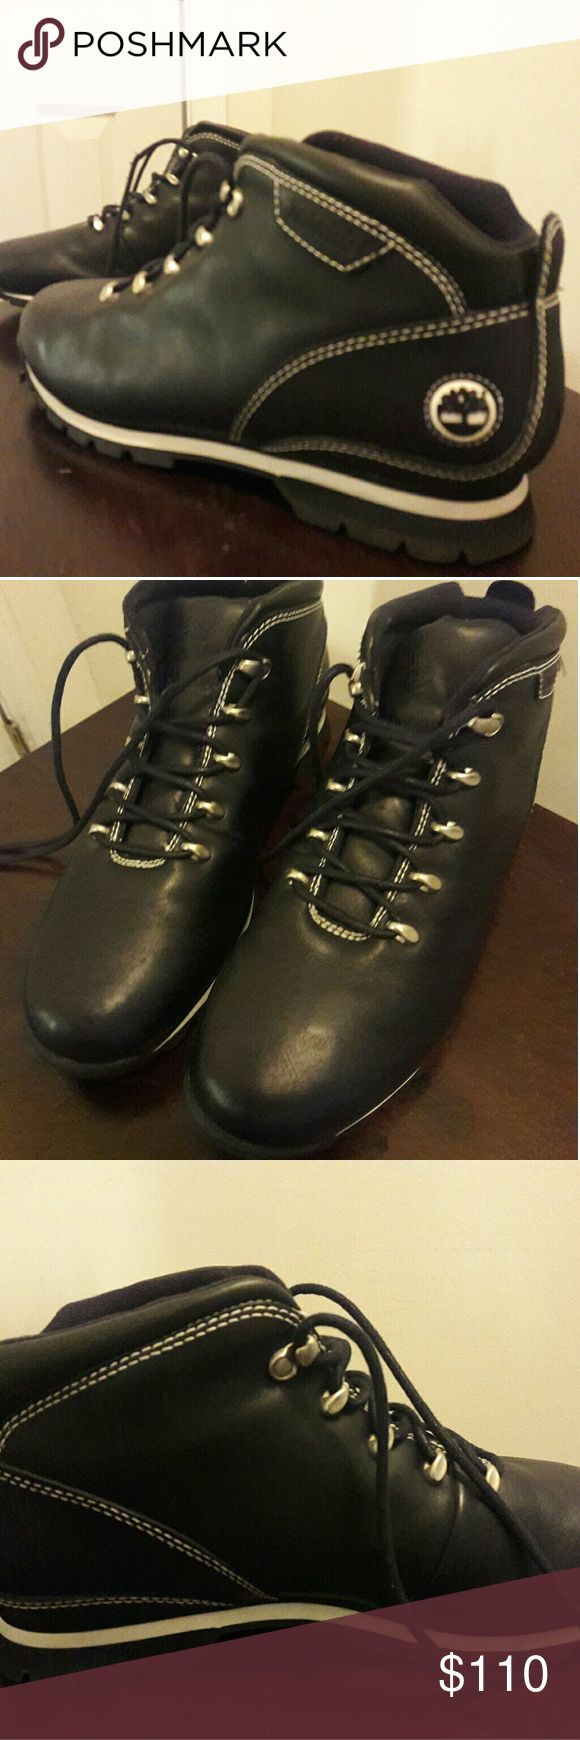 Timberland Euro Hiker Boots These awesome Timberland Euro Hiker Boots are black leather with white trim. Size 11. In great, gently-used condition. Worn only once. Great deal! Claim them today. Timberland Shoes Chukka Boots